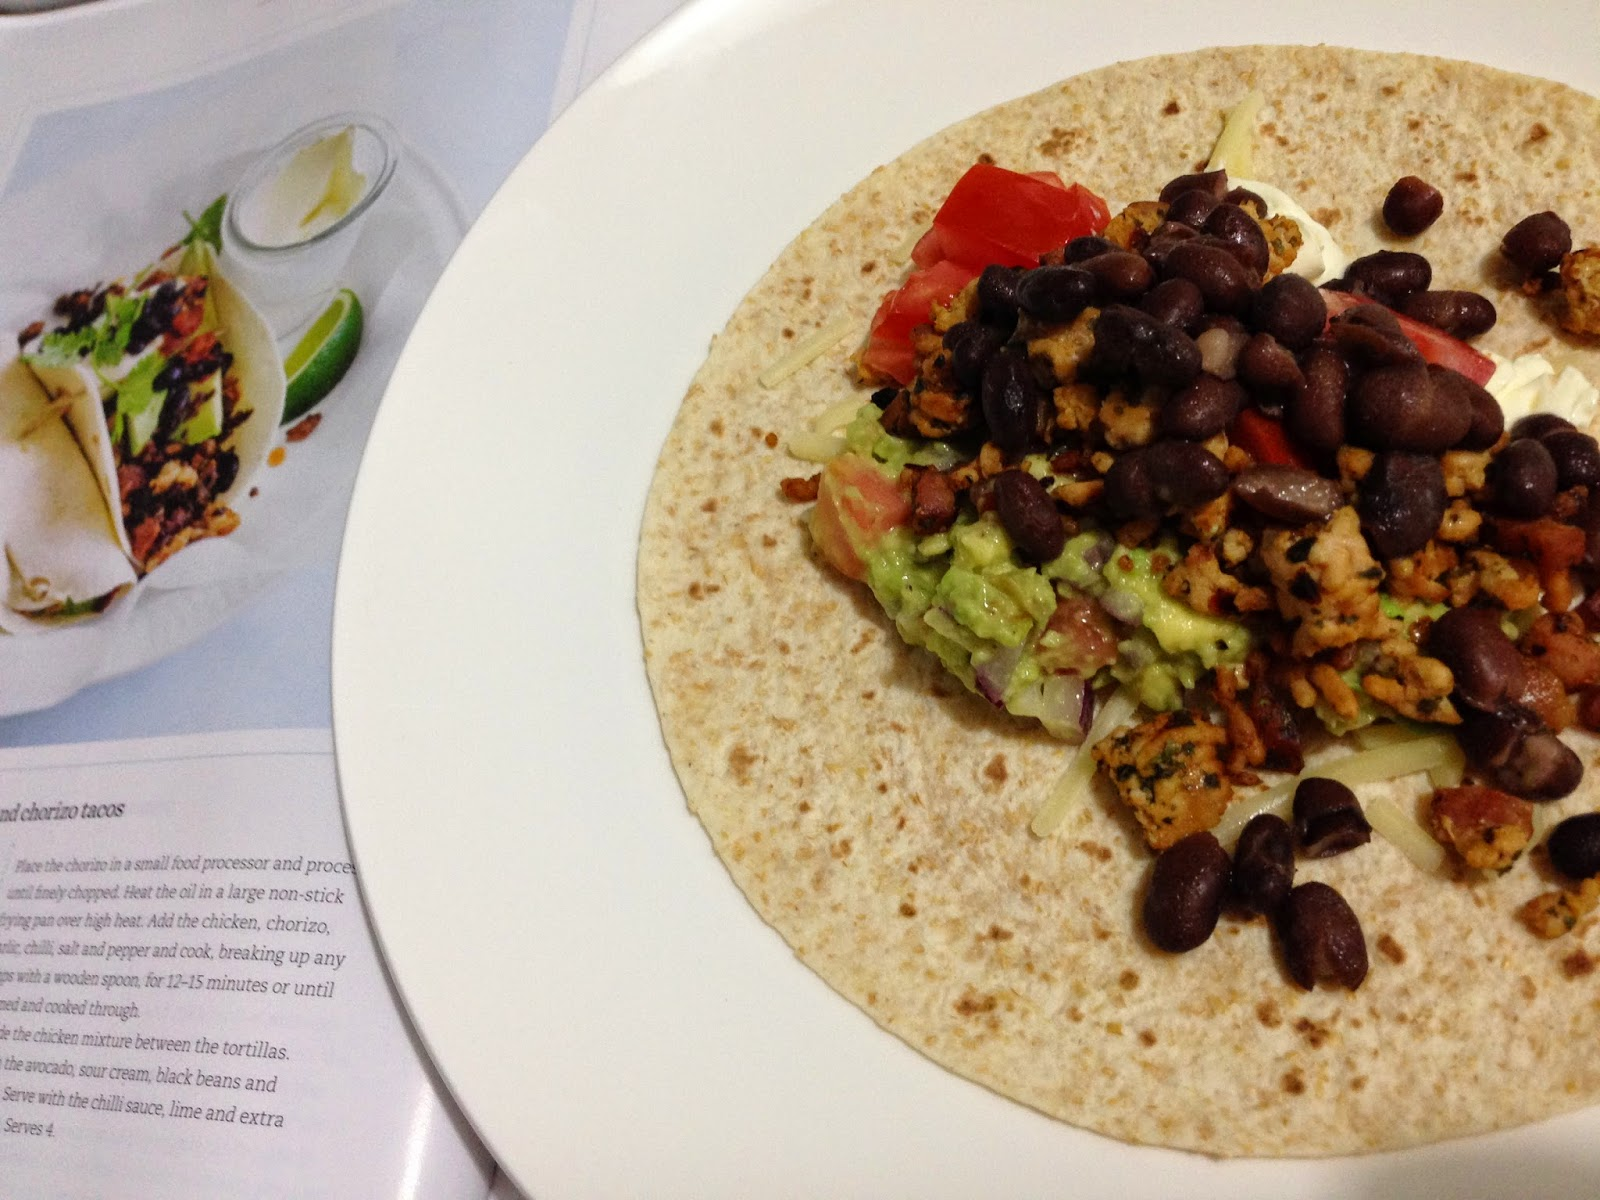 Turkey & Chorizo Burritos inspired by Donna Hay.